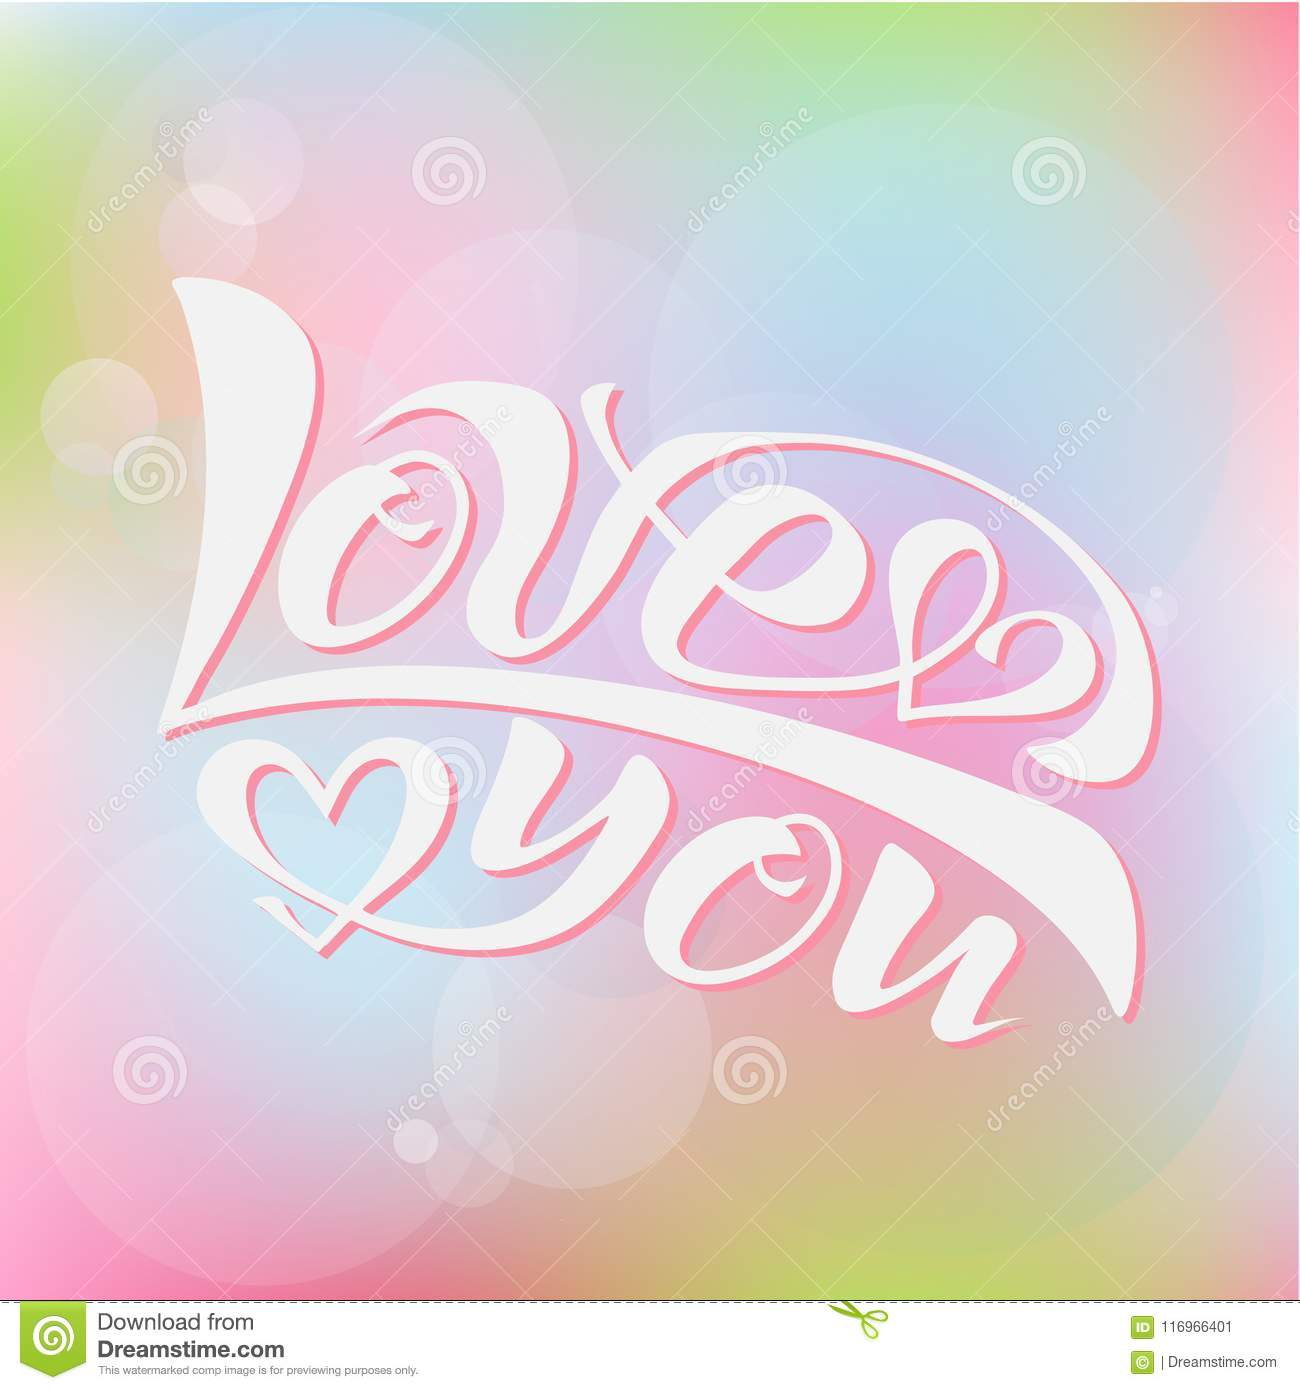 Vector Illustration Of I Love You Stock Vector - Illustration of ...